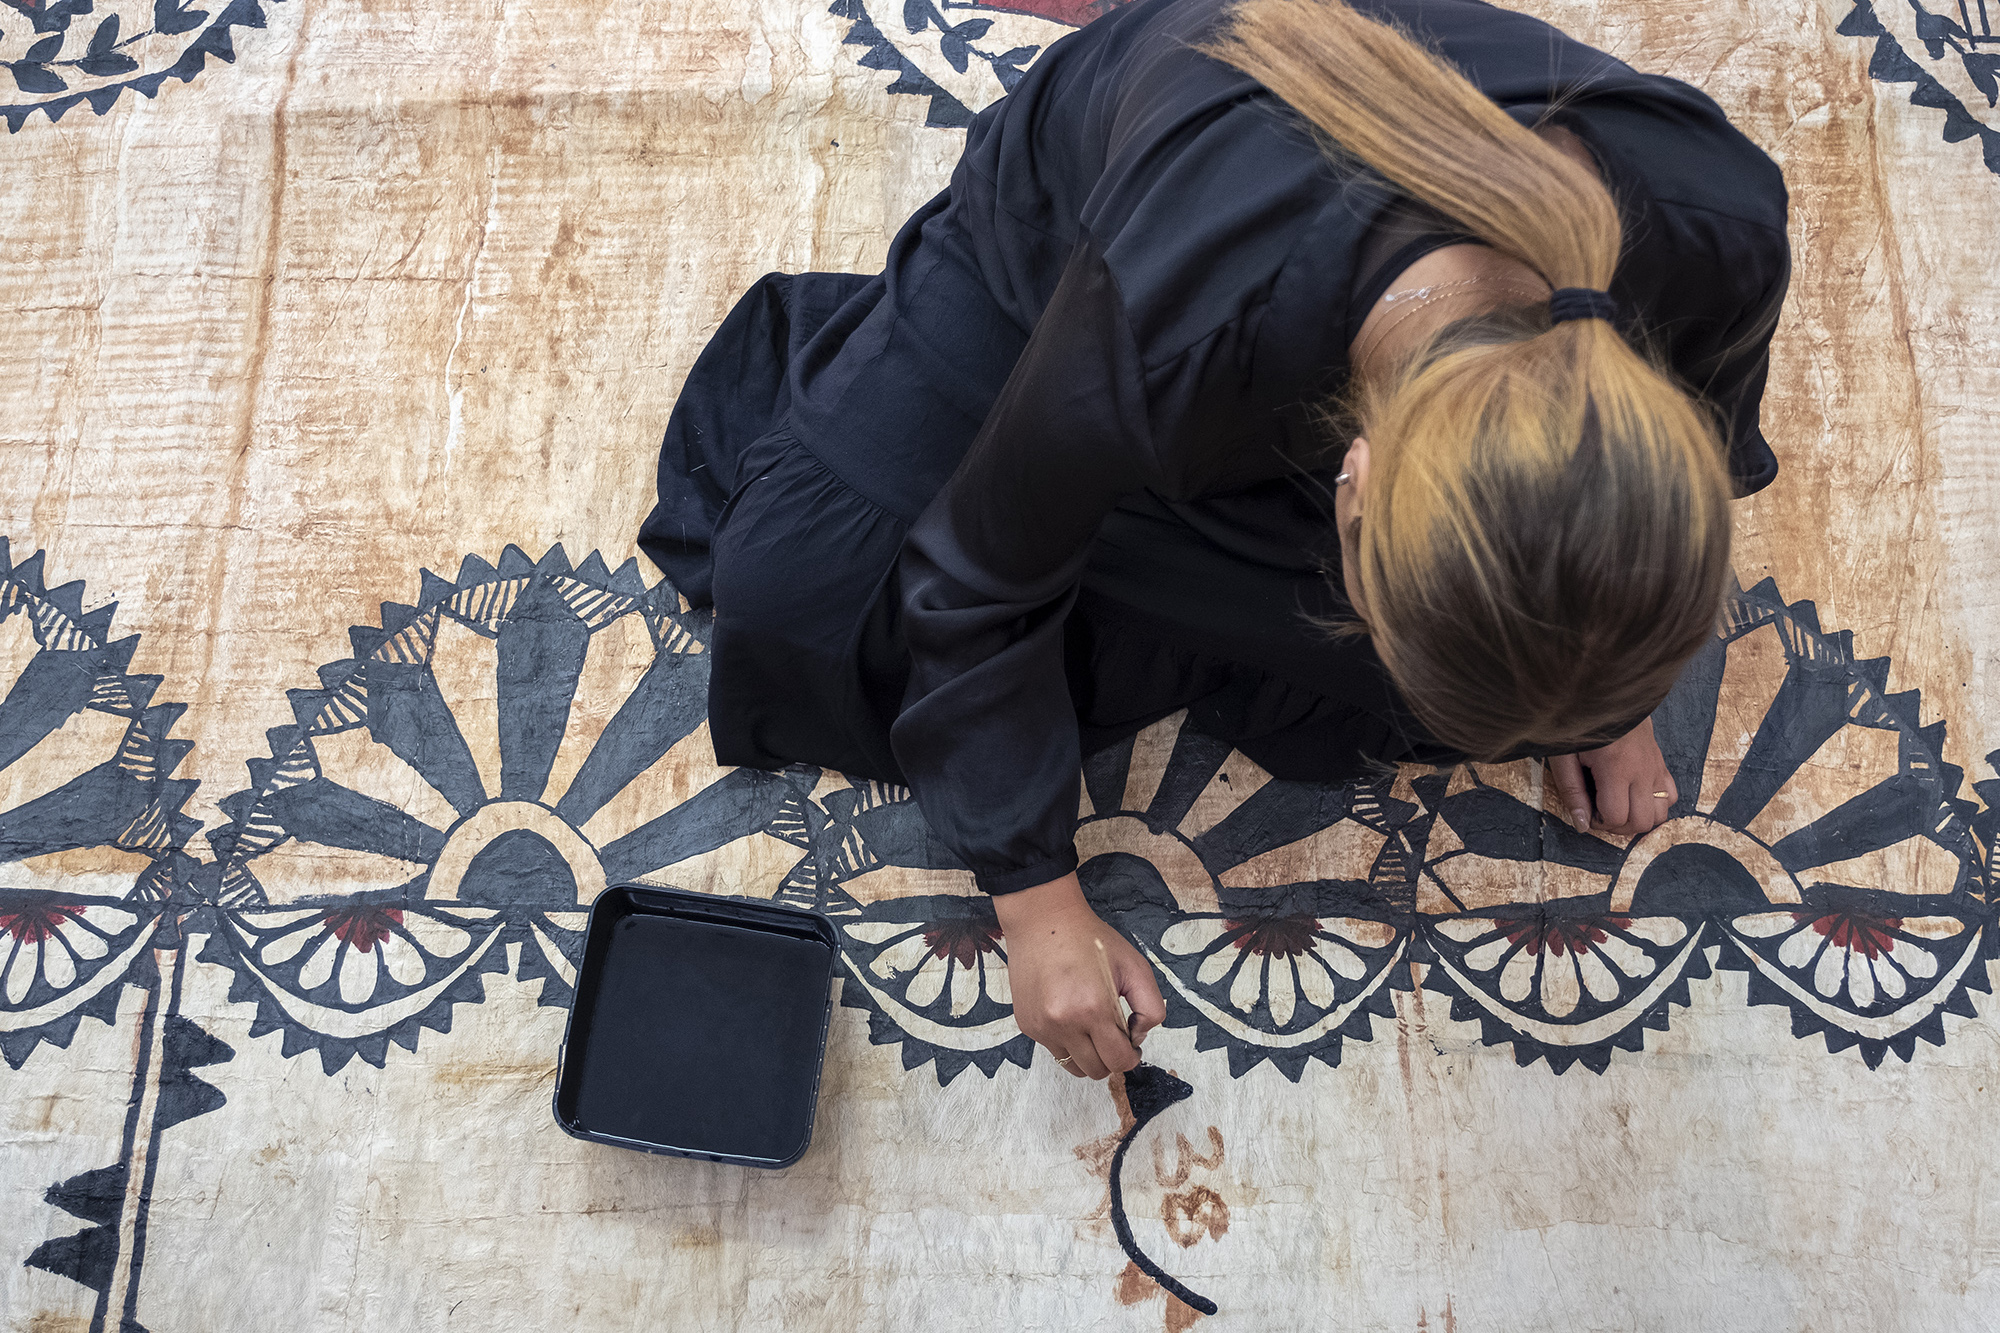 A woman painting black ink on a tapa cloth on the floor.